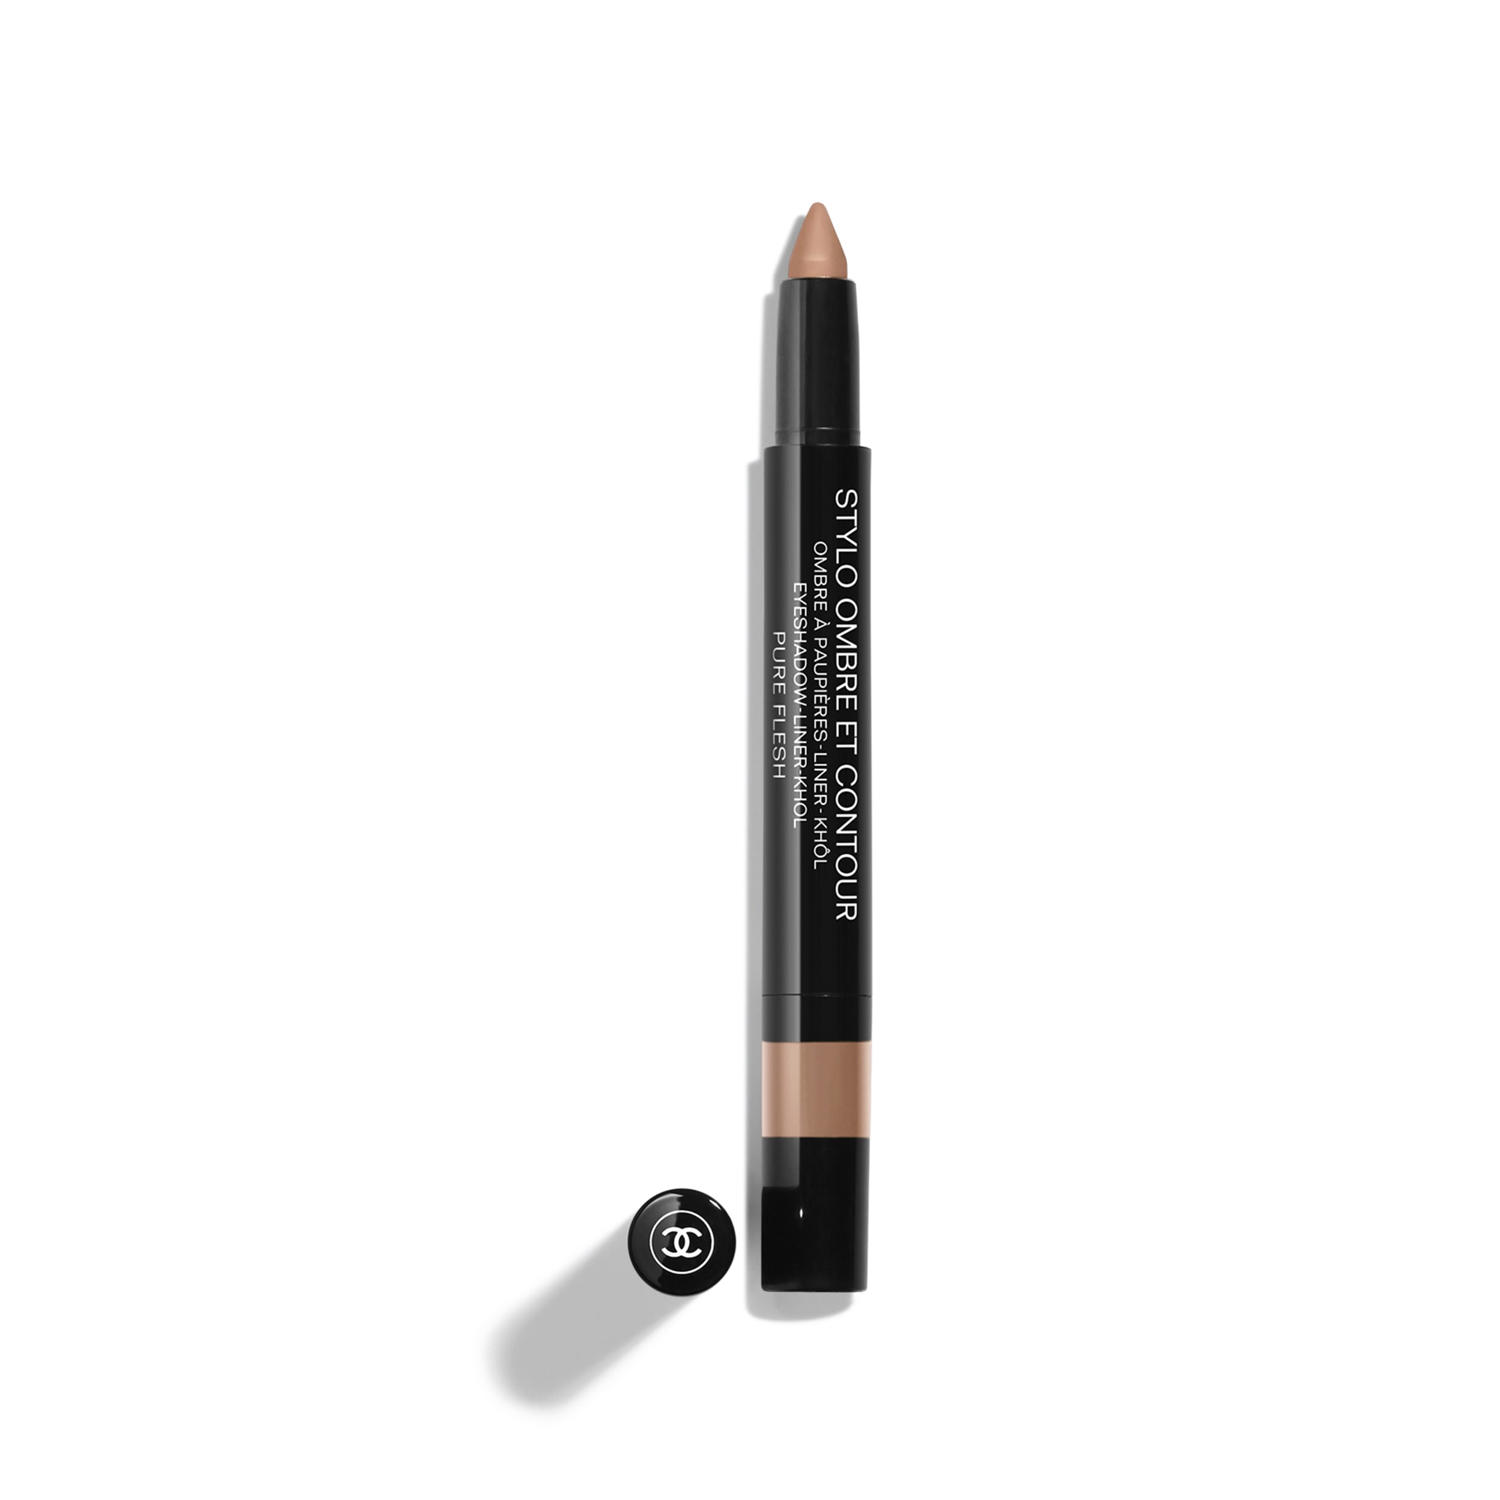 Chanel Stylo Ombre Et Contour Eyeshadow Liner Kohl Pure Flesh 222